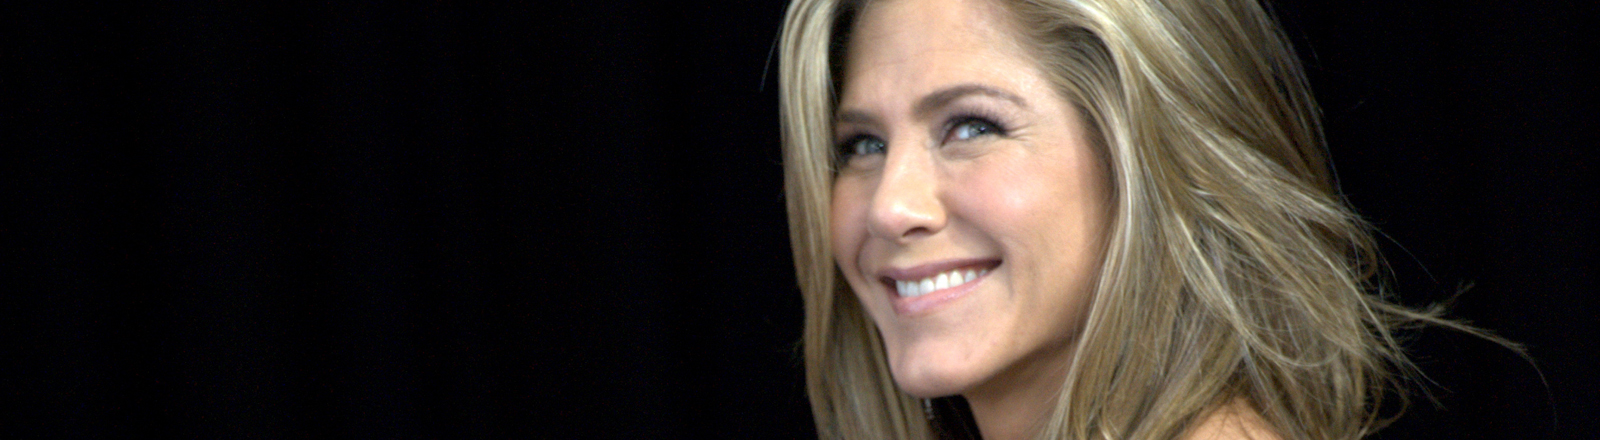 Jennifer Aniston bei den Oscars am 22. Februar 2015